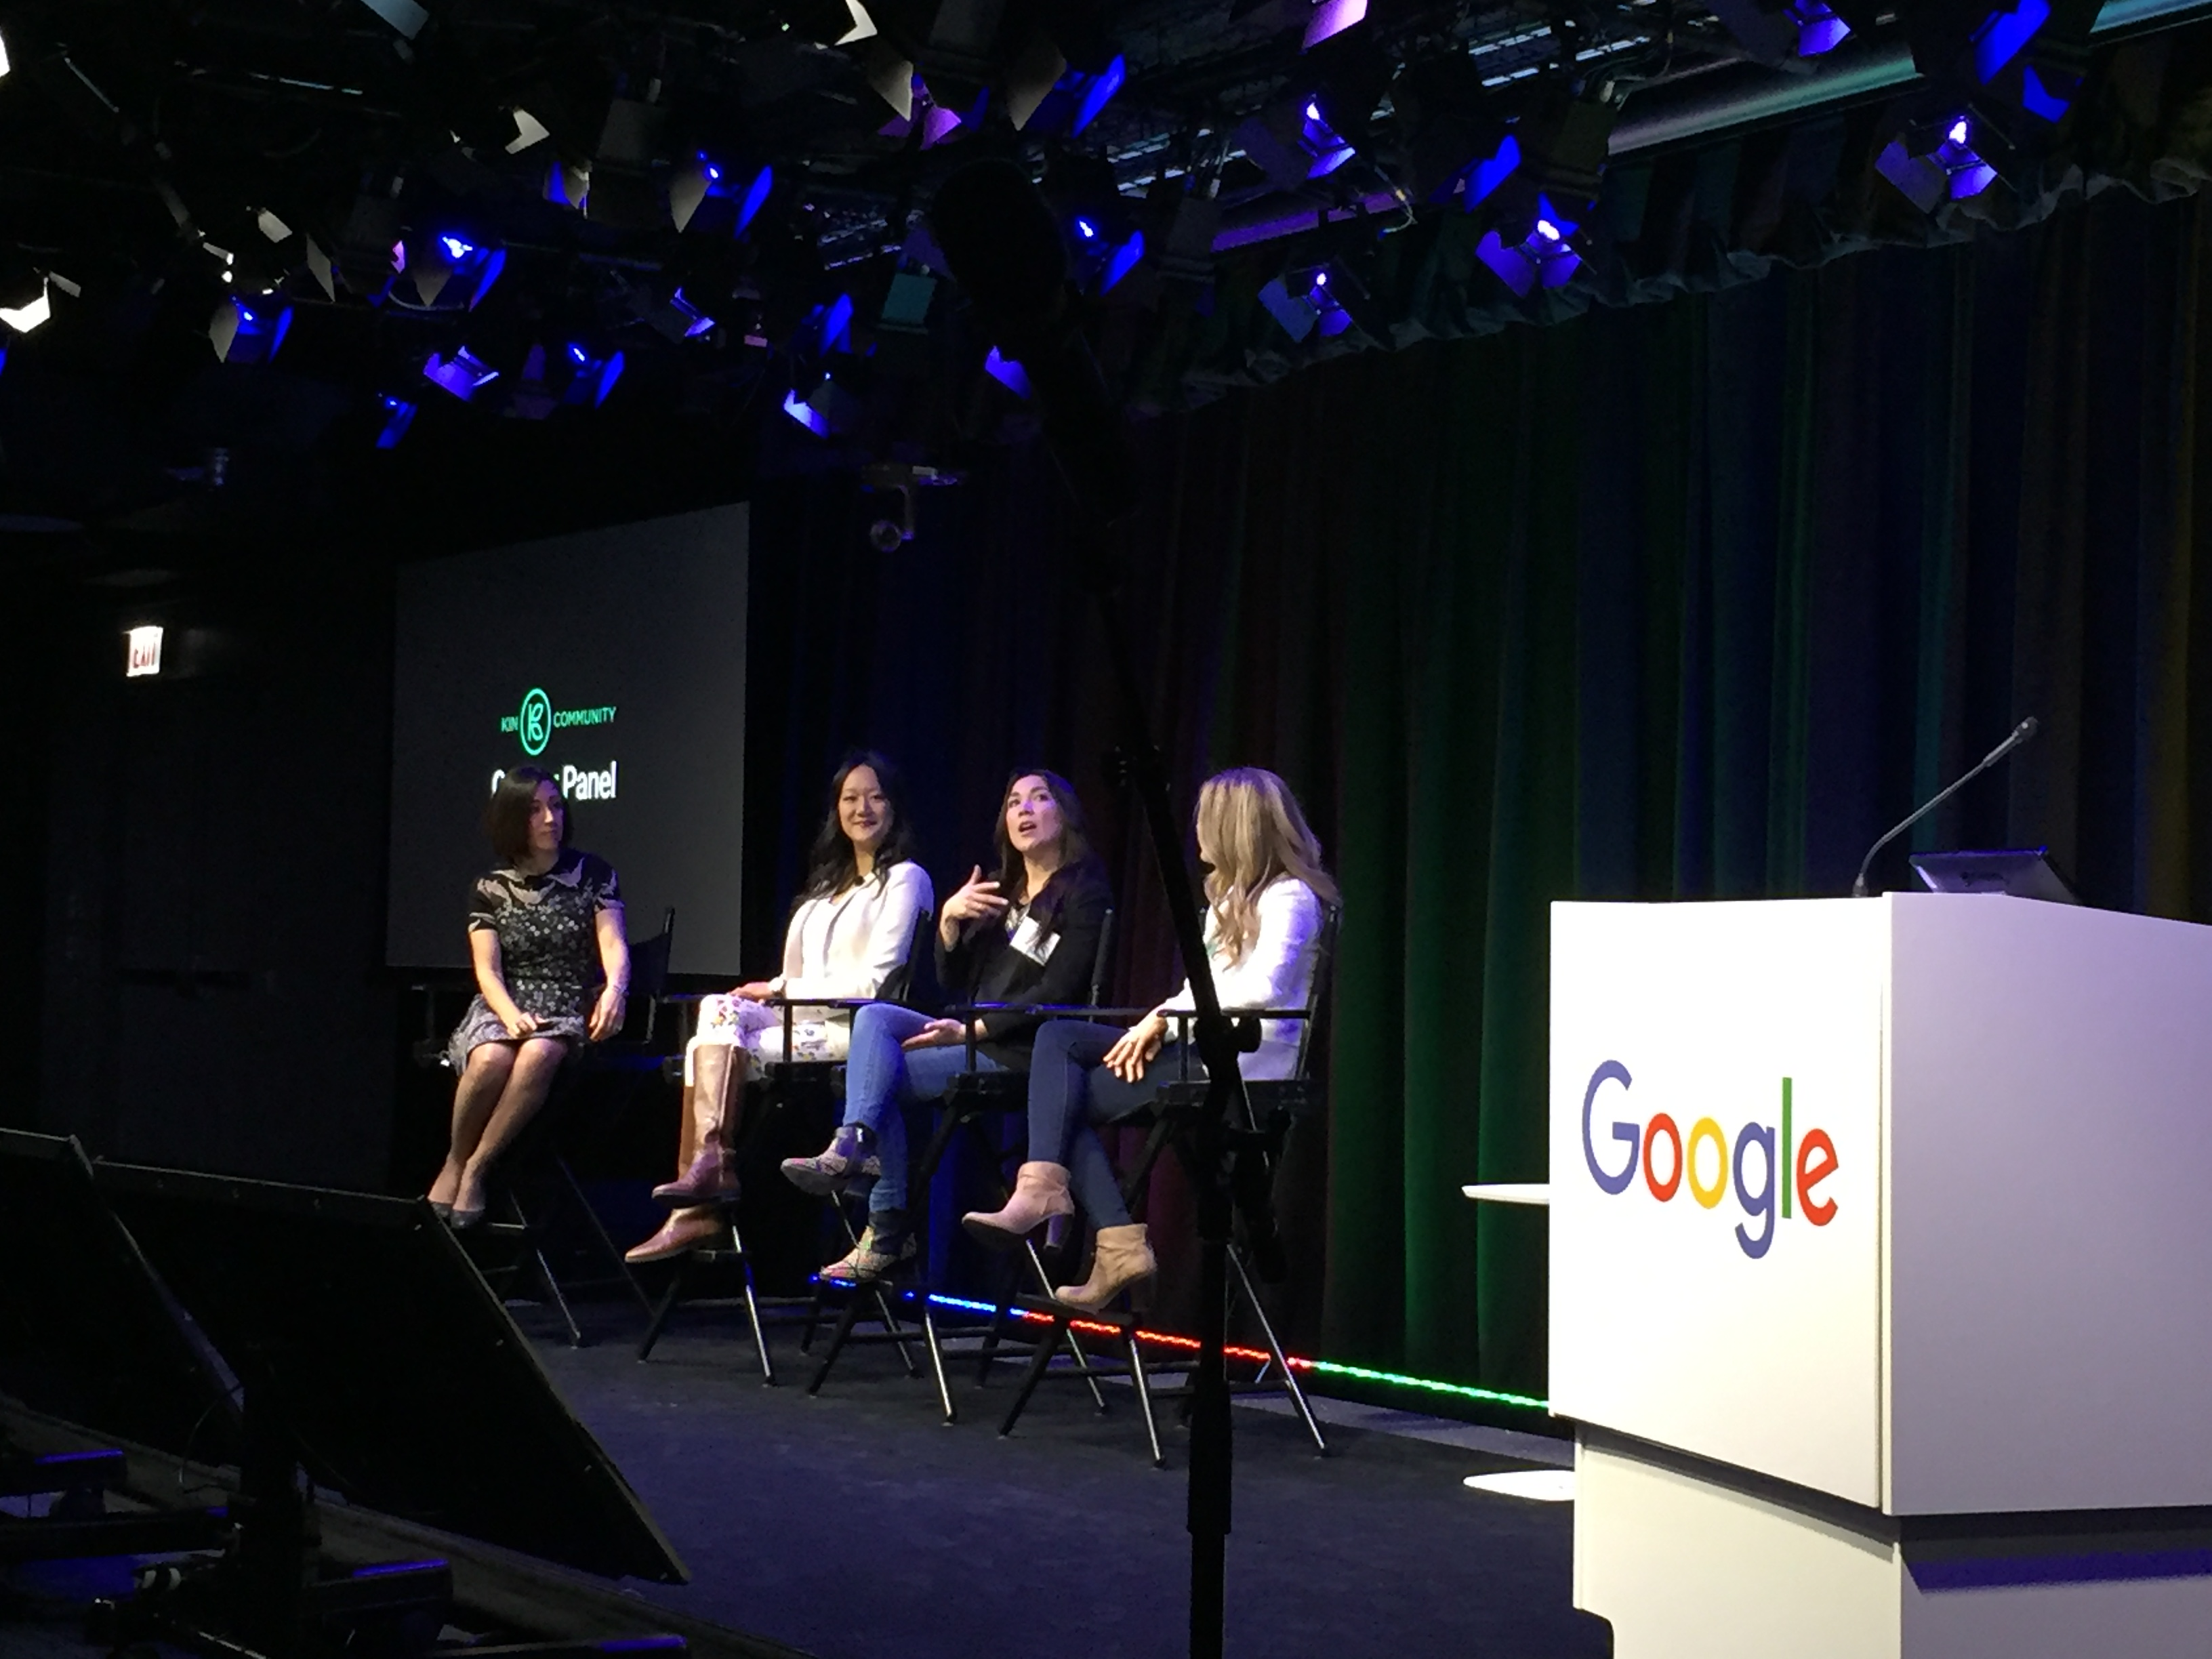 Influencer-Panel-WOMMA-Talk-Influence-2016-Chicago-Google